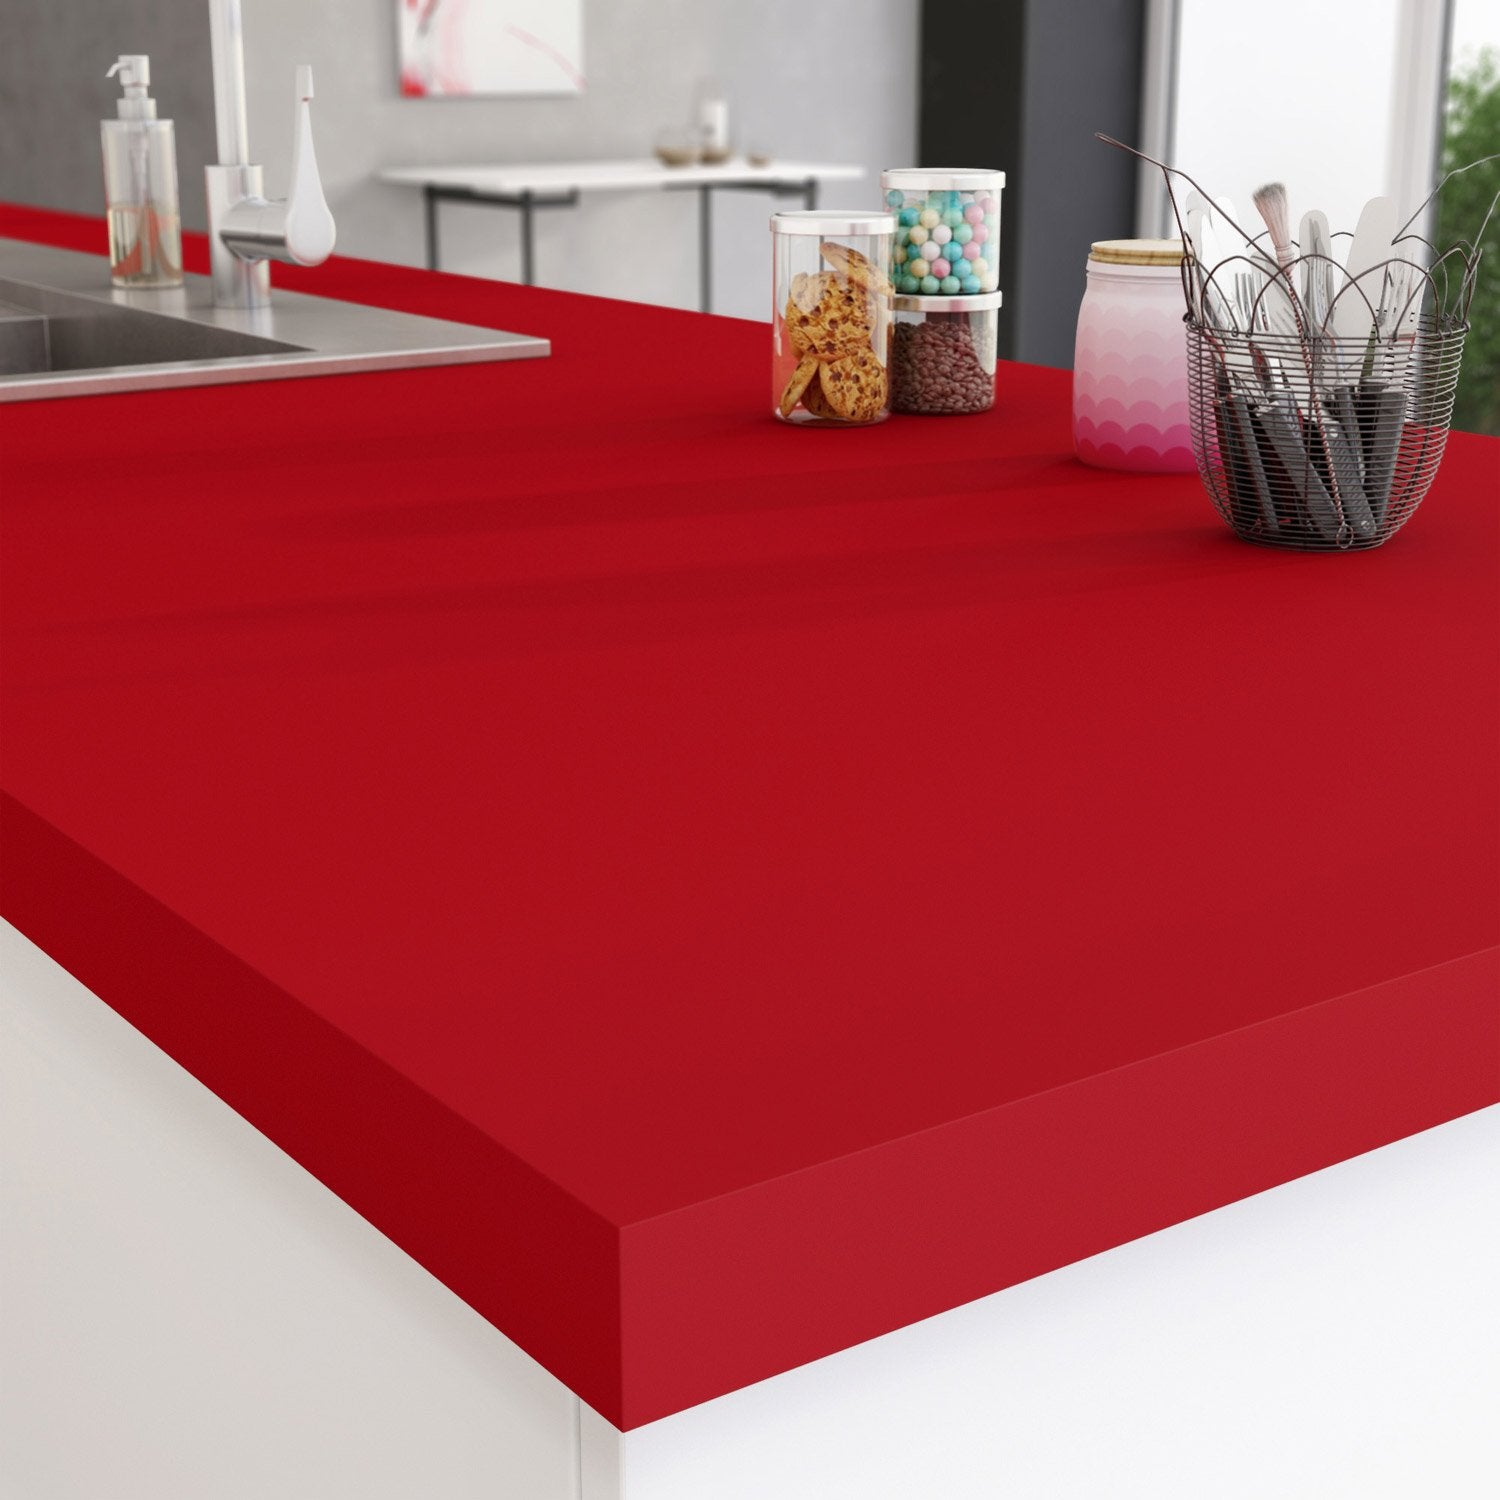 Exceptionnel PLAN TRAV ROUGE ROUGE 3 300X65X3.8CM | Leroy Merlin ZF92